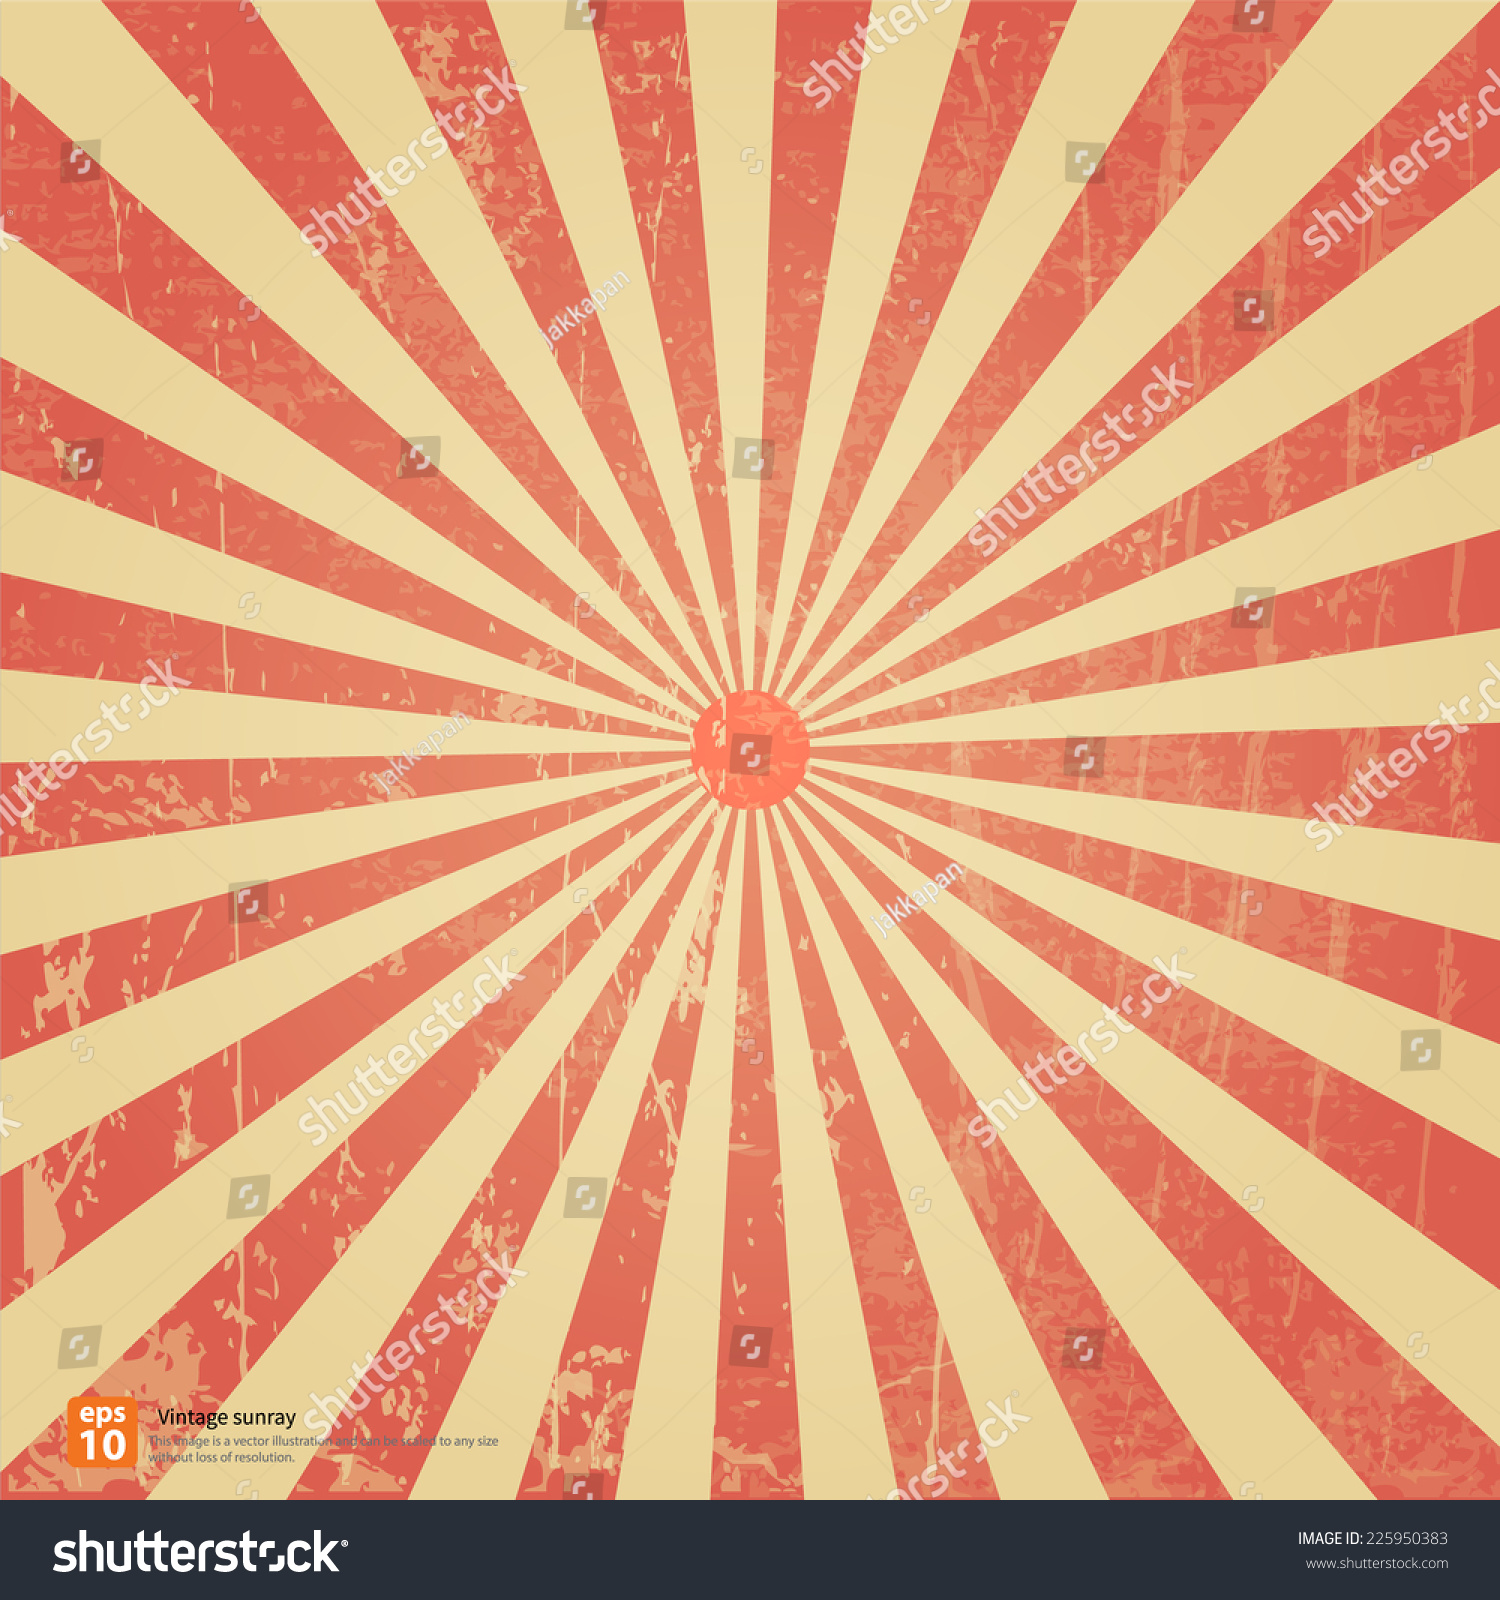 New Vector Vintage Red Rising Sun Stock Vector 225950383 ... Vintage Burst Background